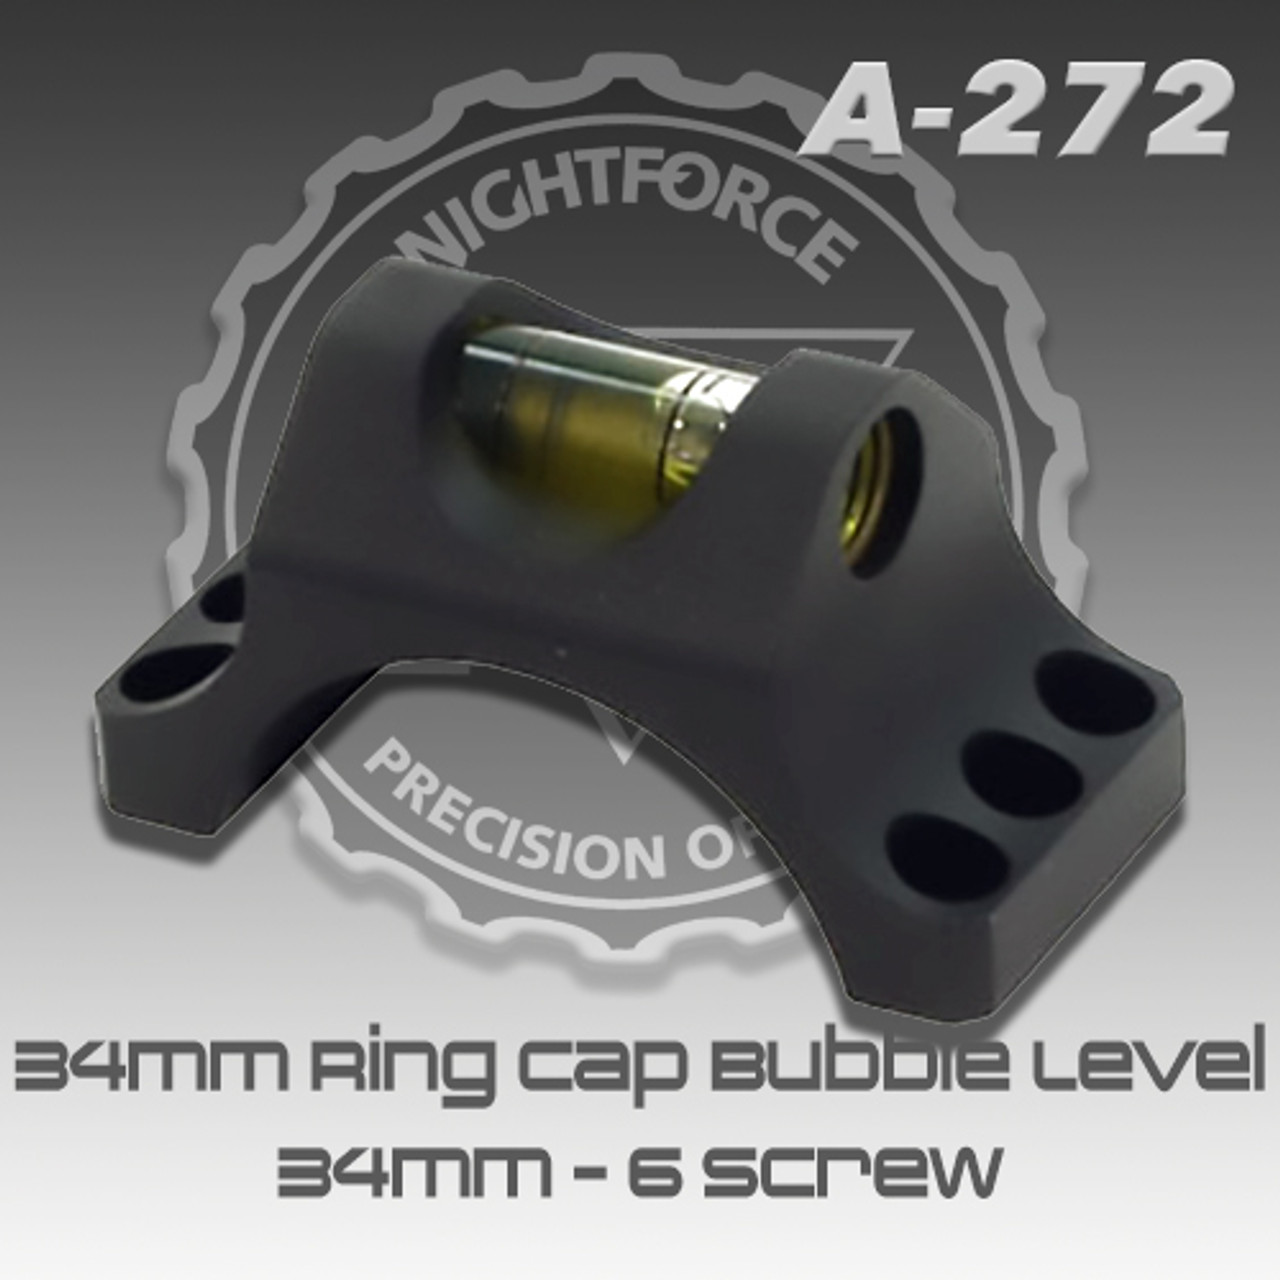 NightForce Top Half of Ring with Level 34mm Black Mount A273 by NightForce 6 screw